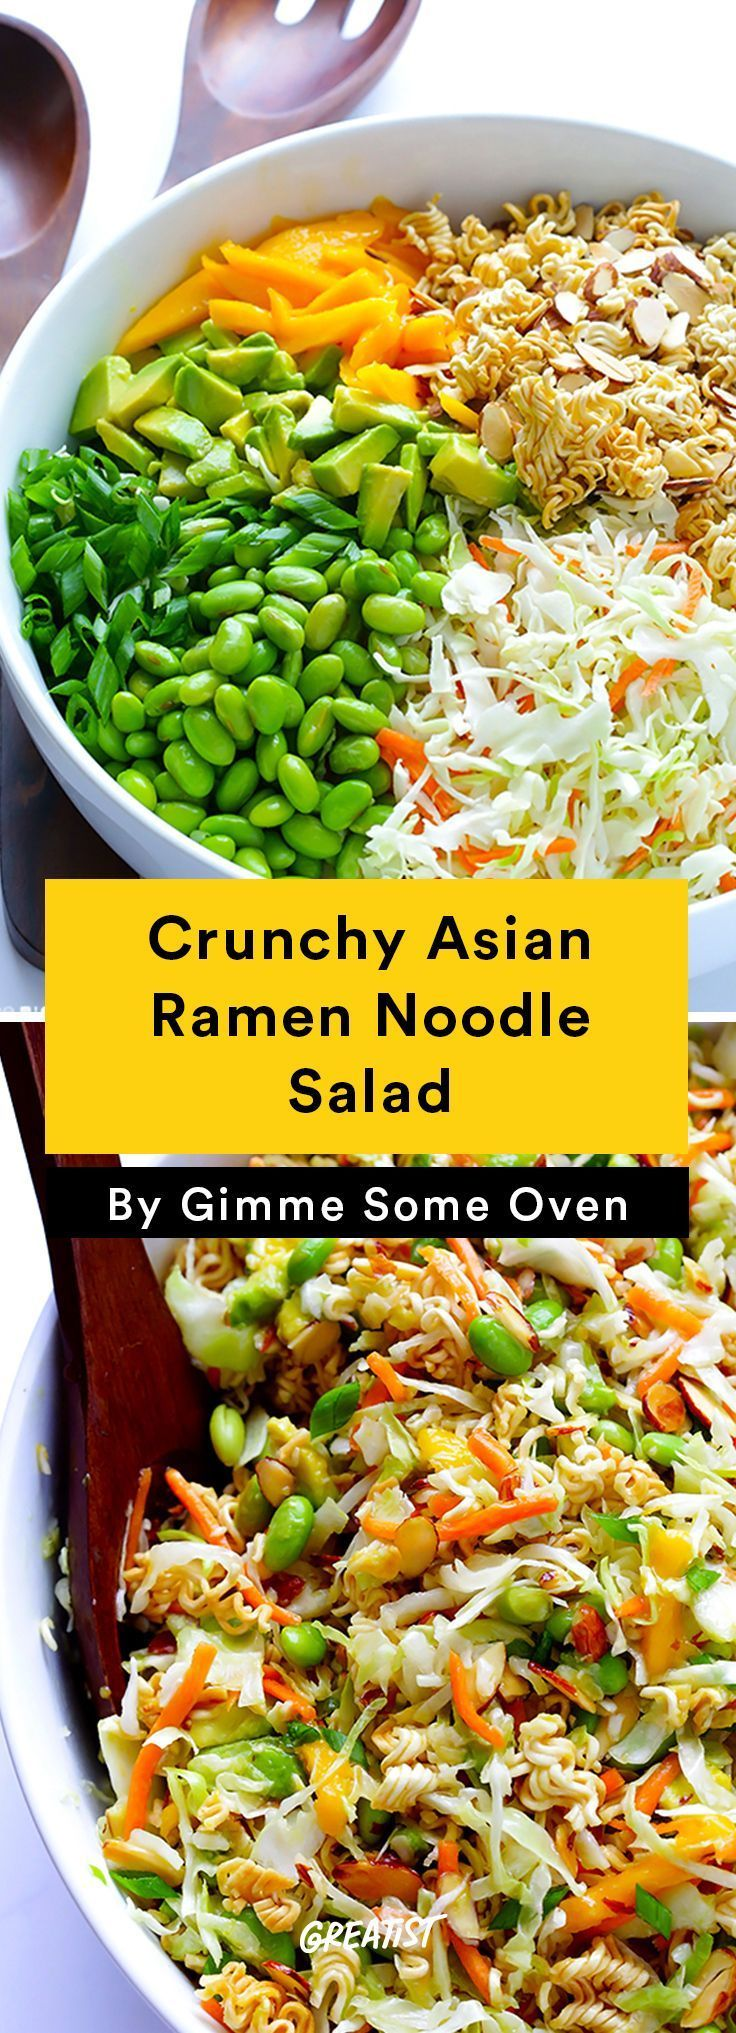 1. Crunchy Asian Ramen Noodle Salad #healthy #salads http://greatist.com/eat/summer-salad-recipes-youll-actually-want-to-eat